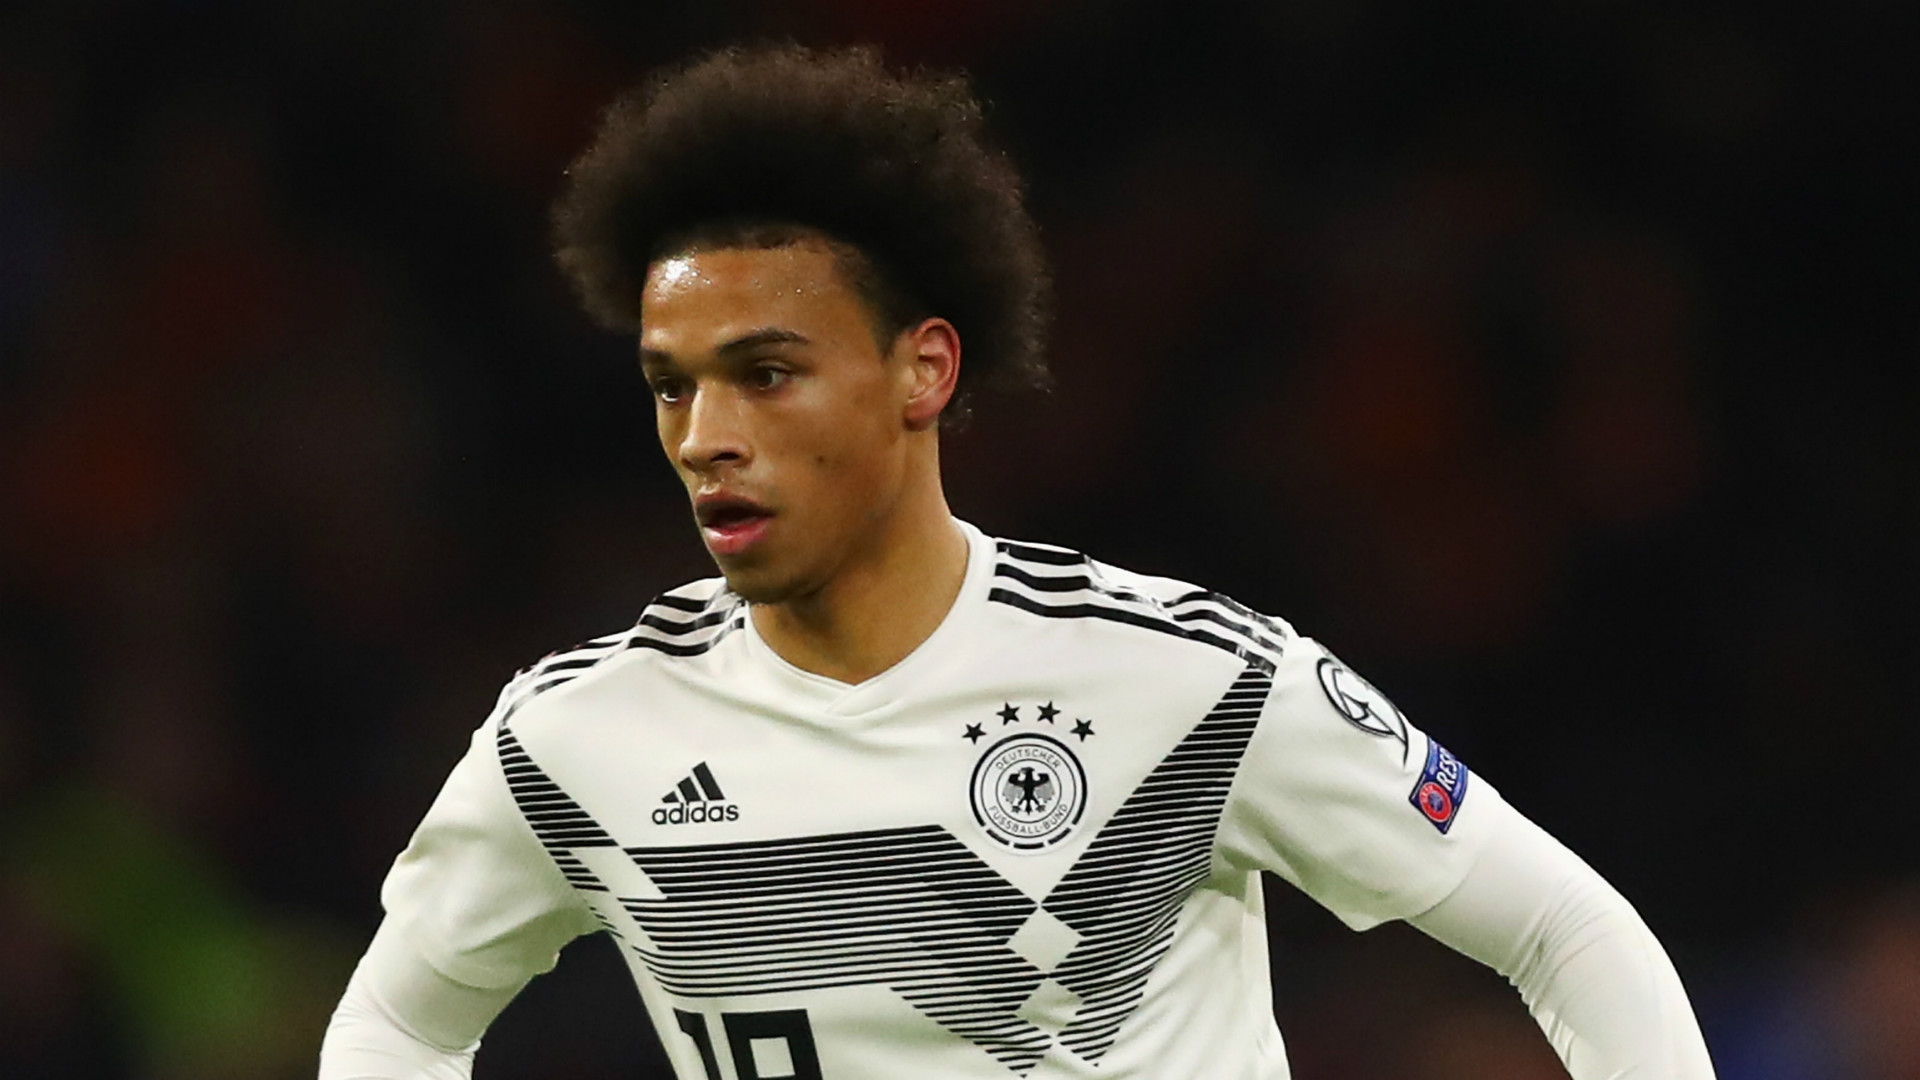 Flick remains tight-lipped on Sane to Bayern rumours